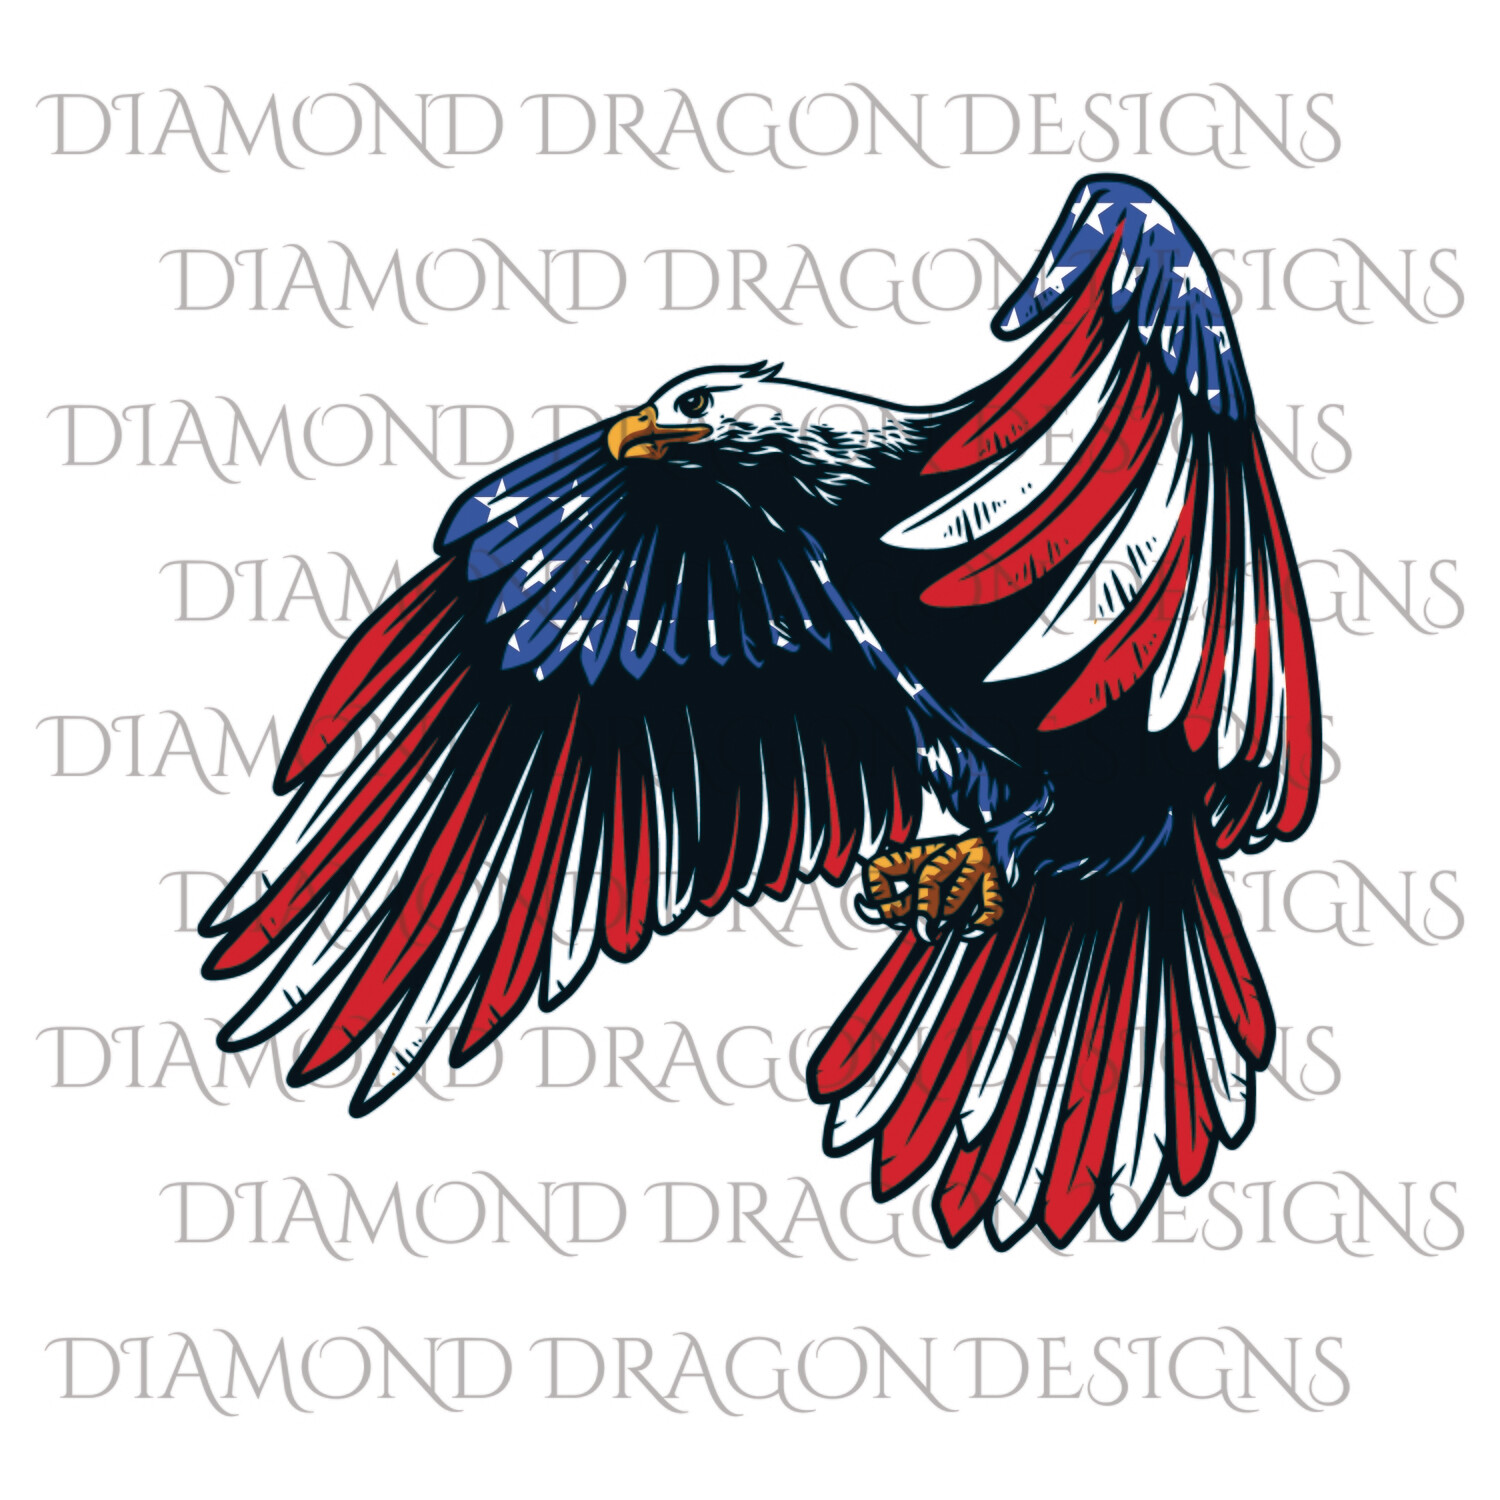 Patriotic - America, Patriotic Eagle, American Flag, 4th of July, USA, Digital Image